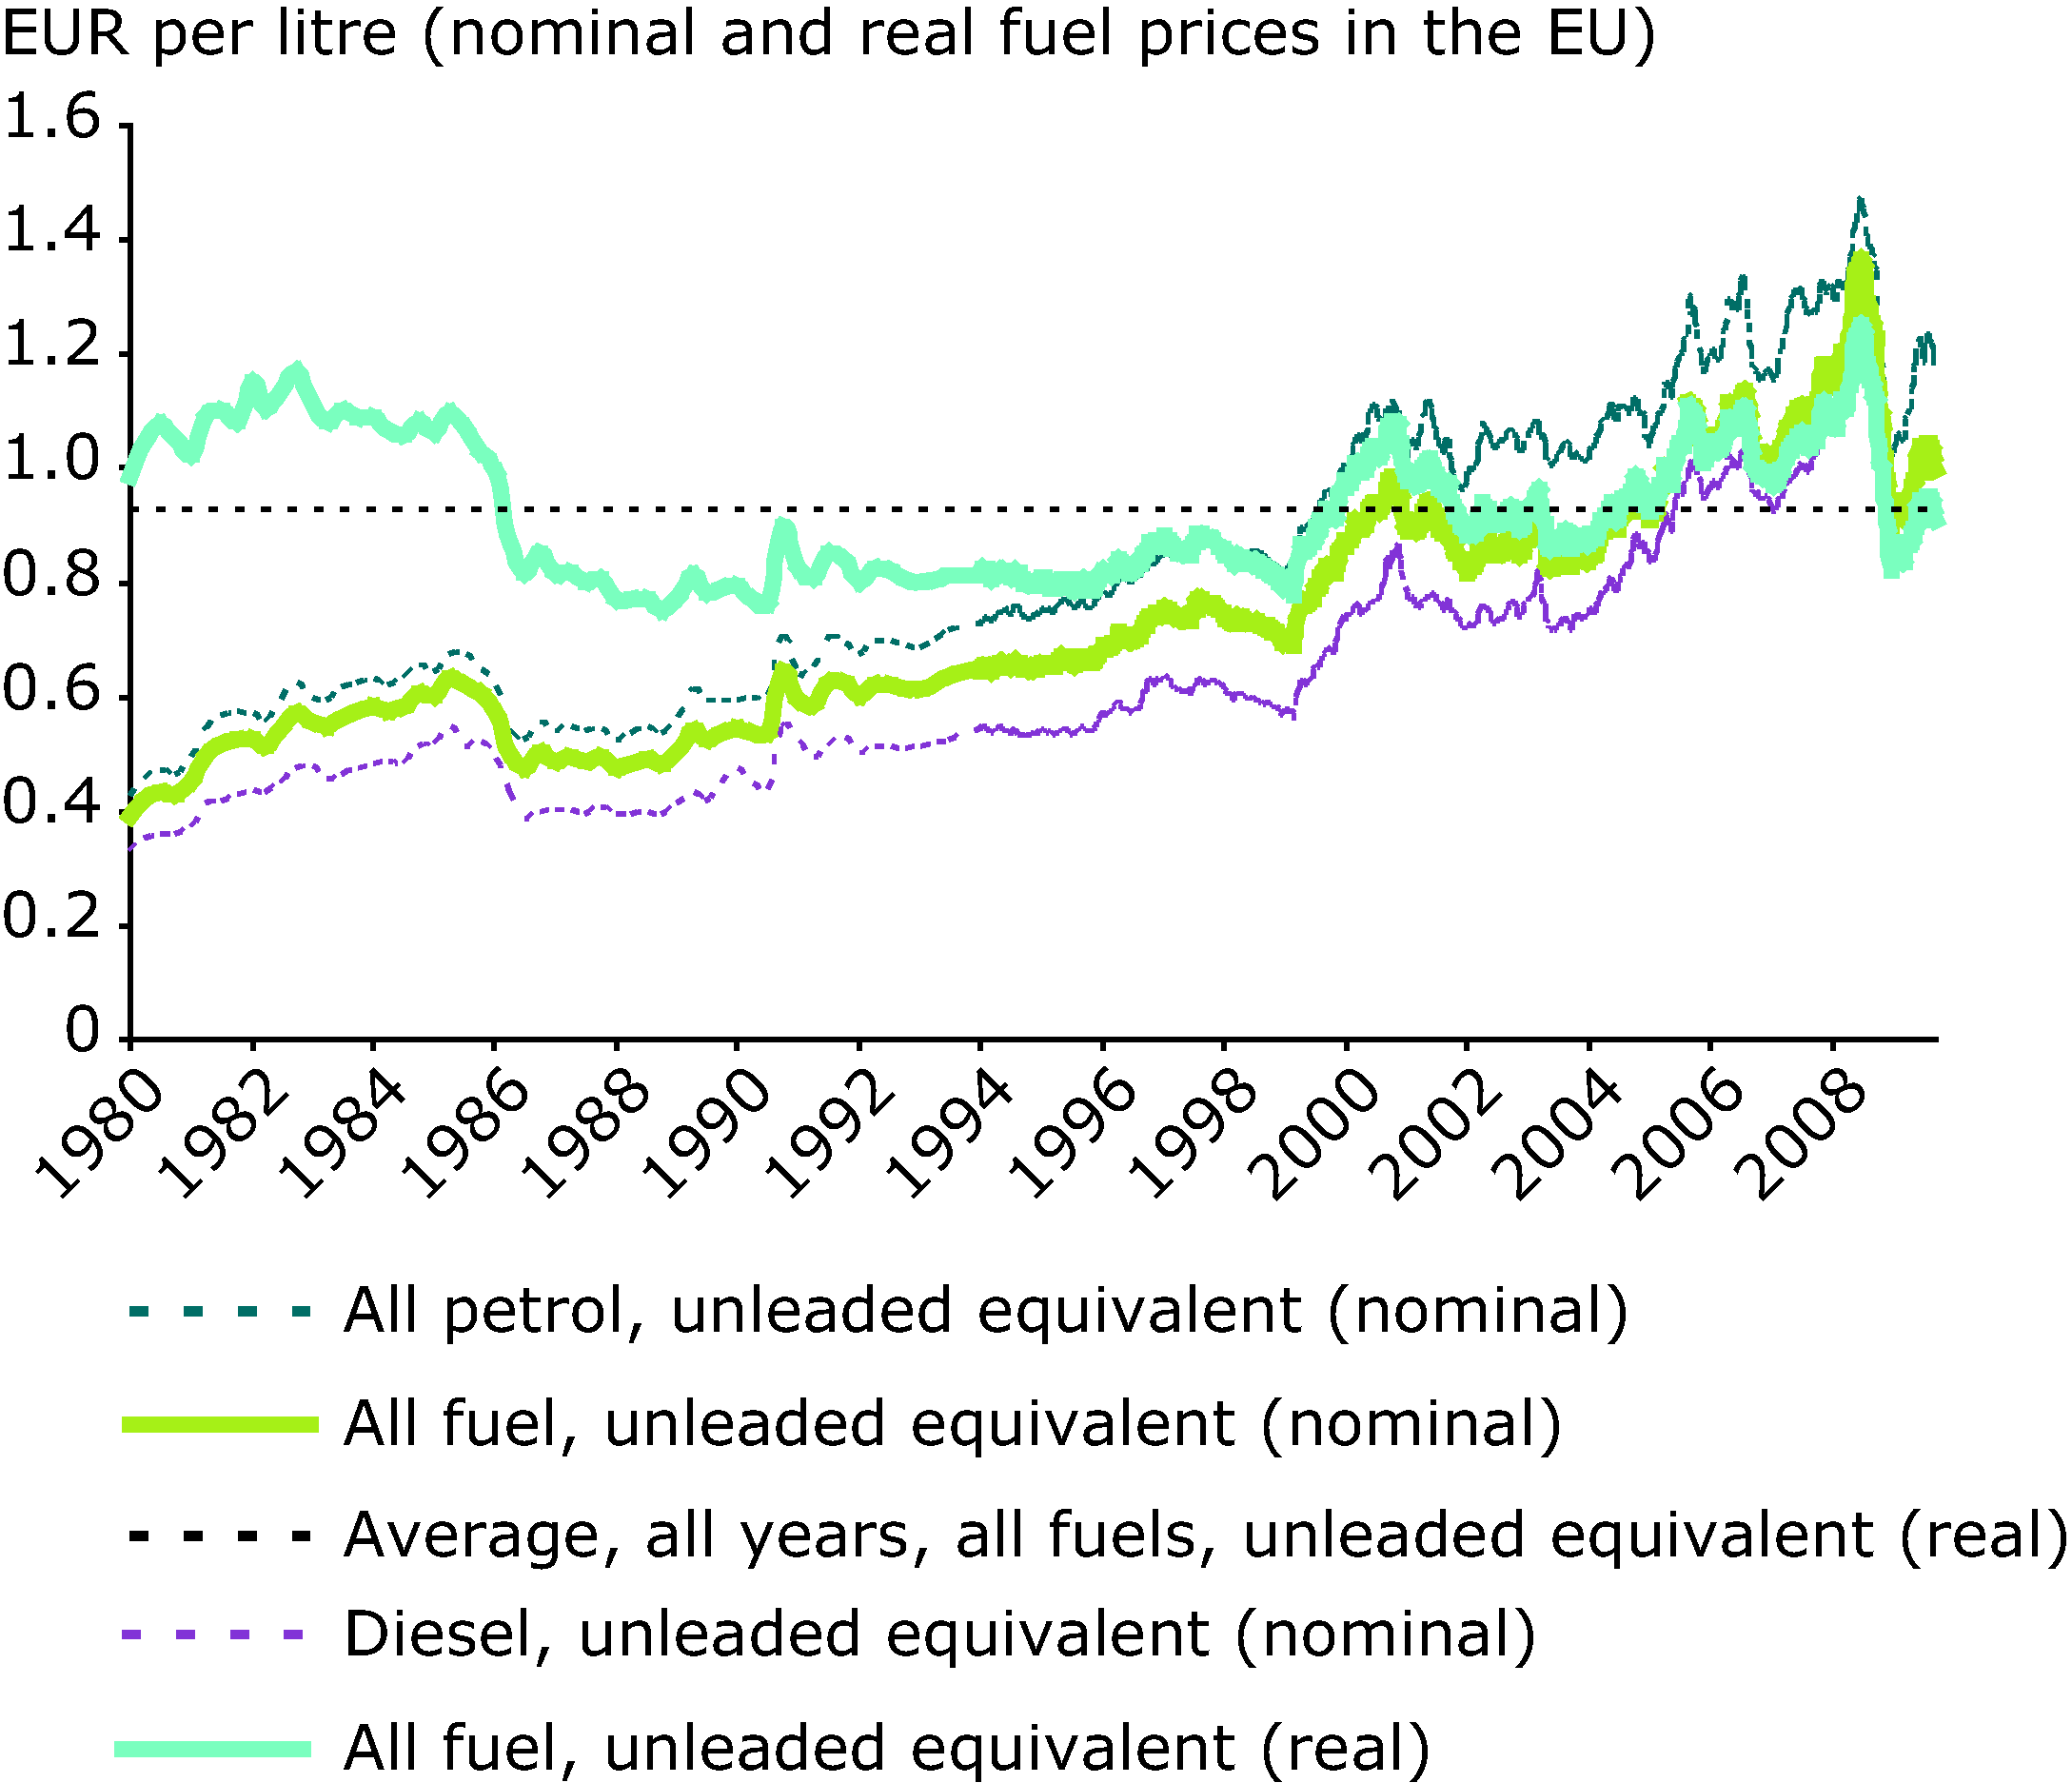 Road transport fuel prices (including taxes) in EU Member States